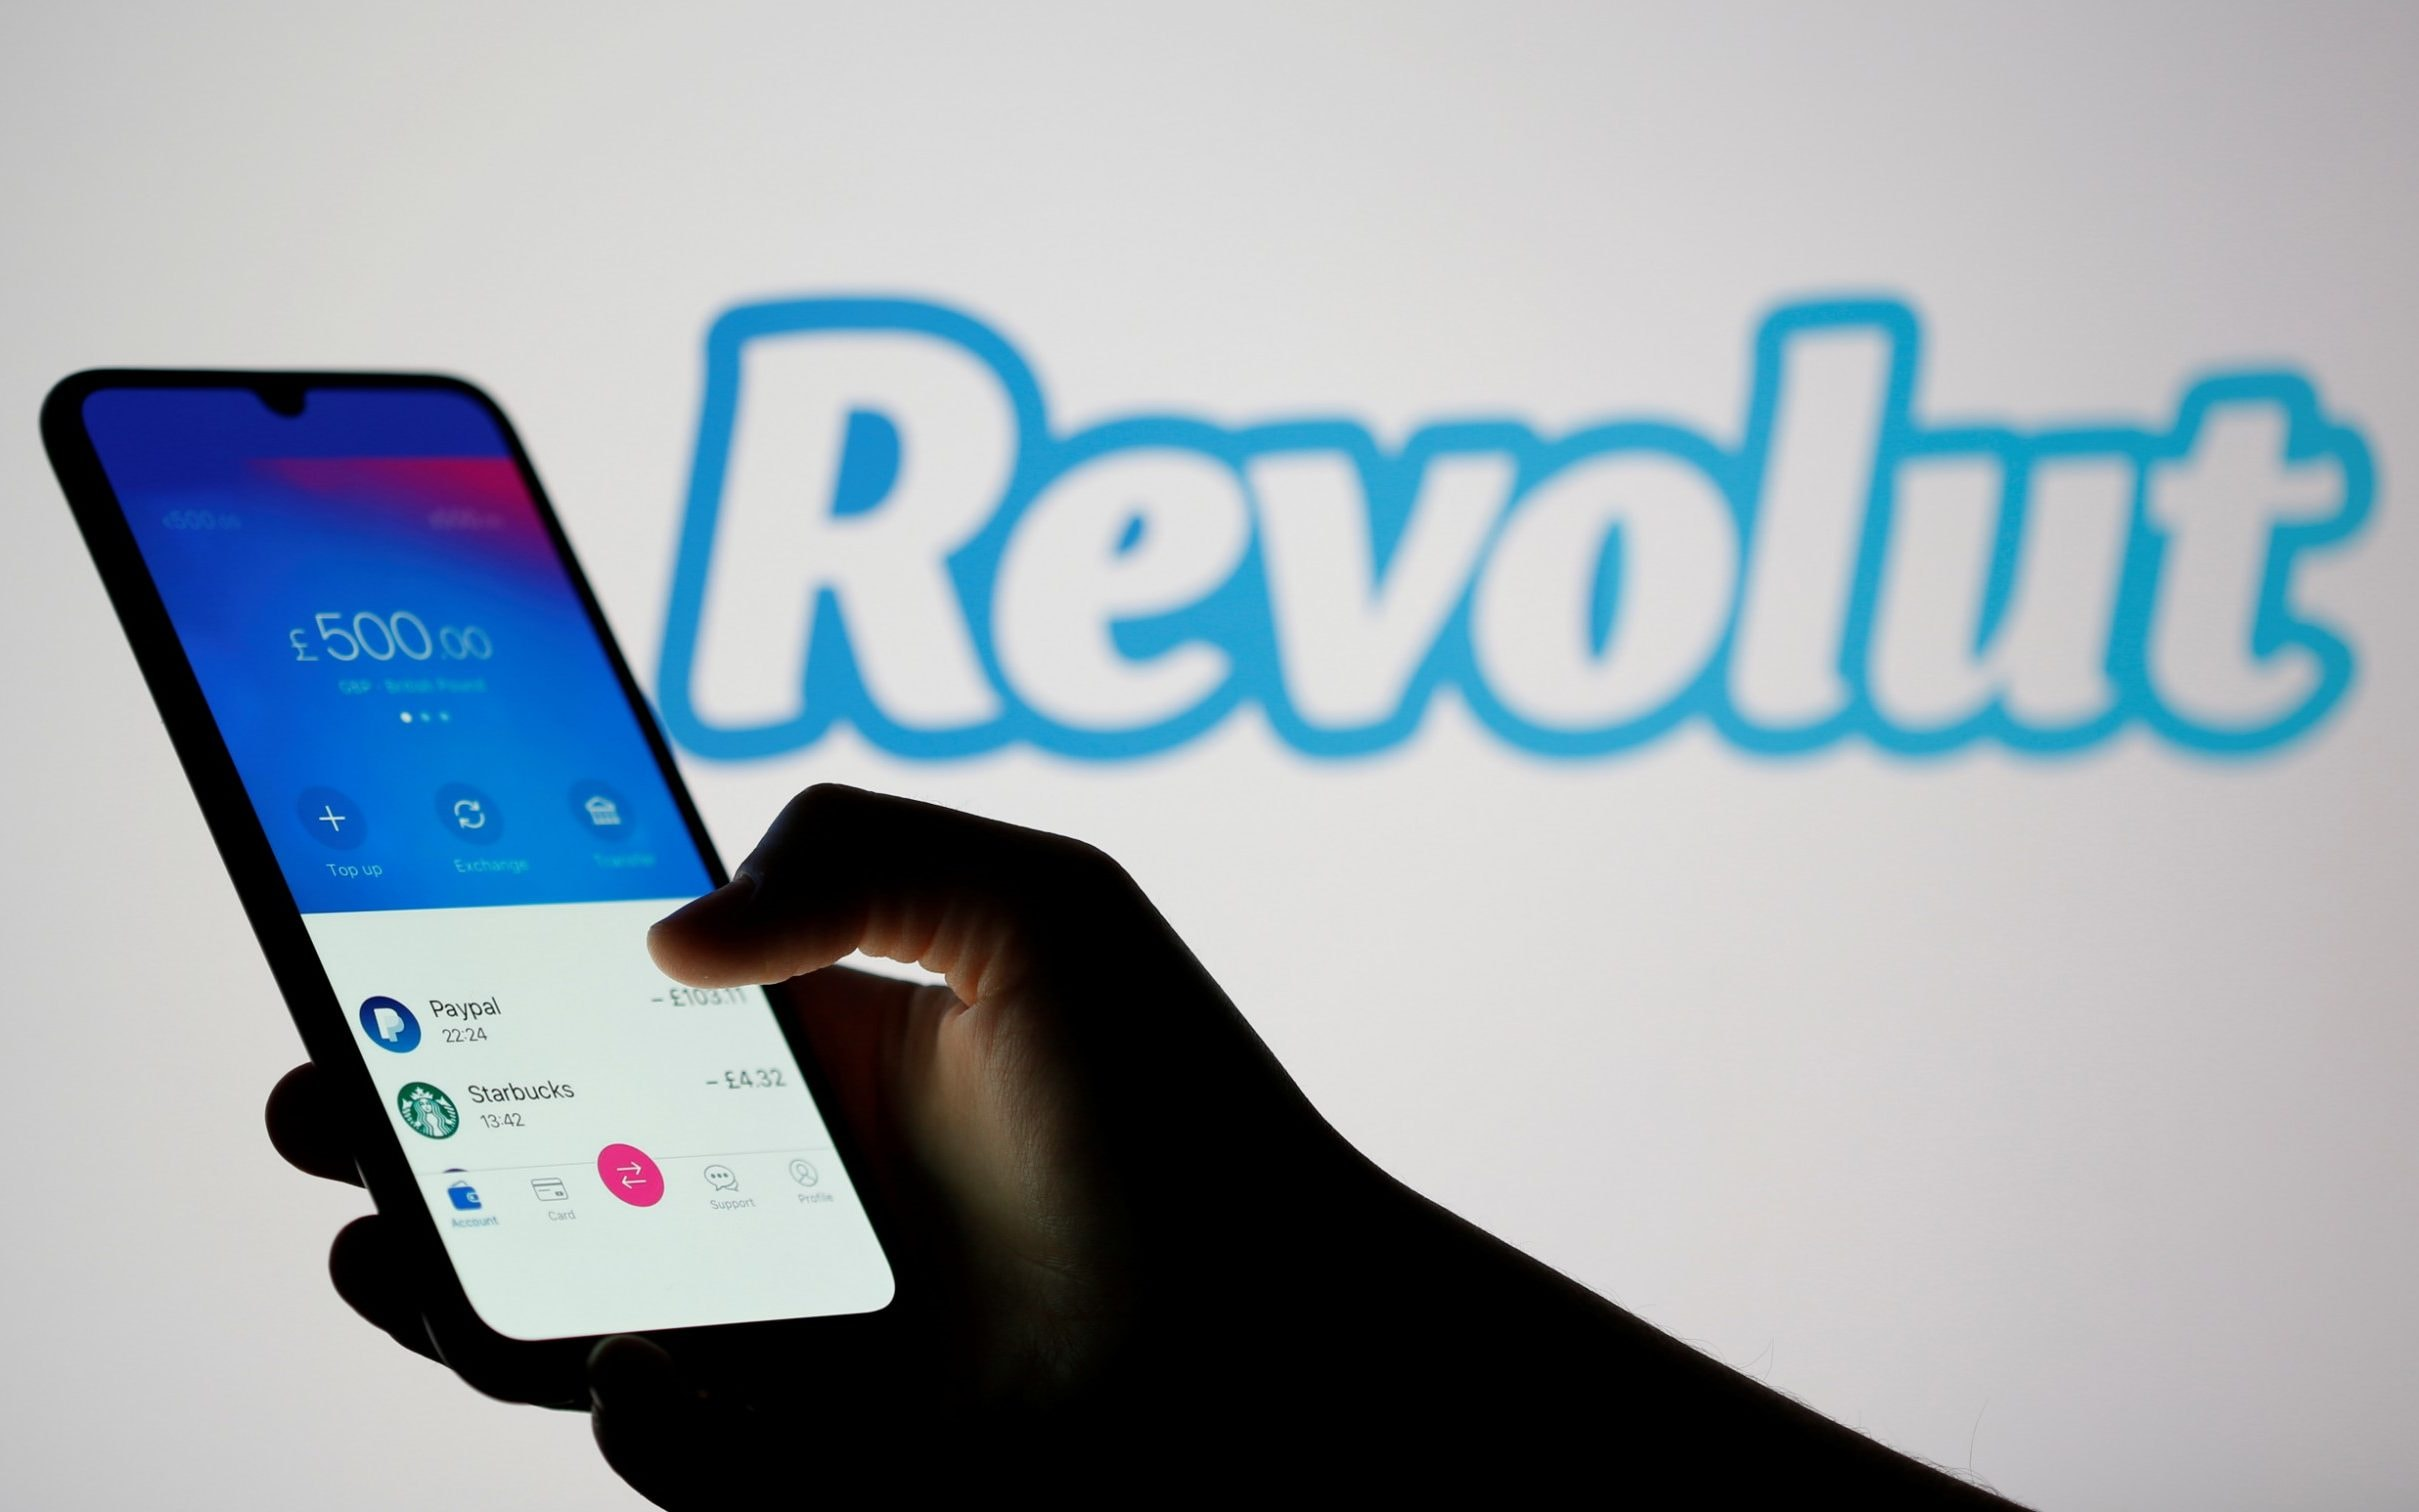 Revolut app announces Bitcoin withdrawals… within limits